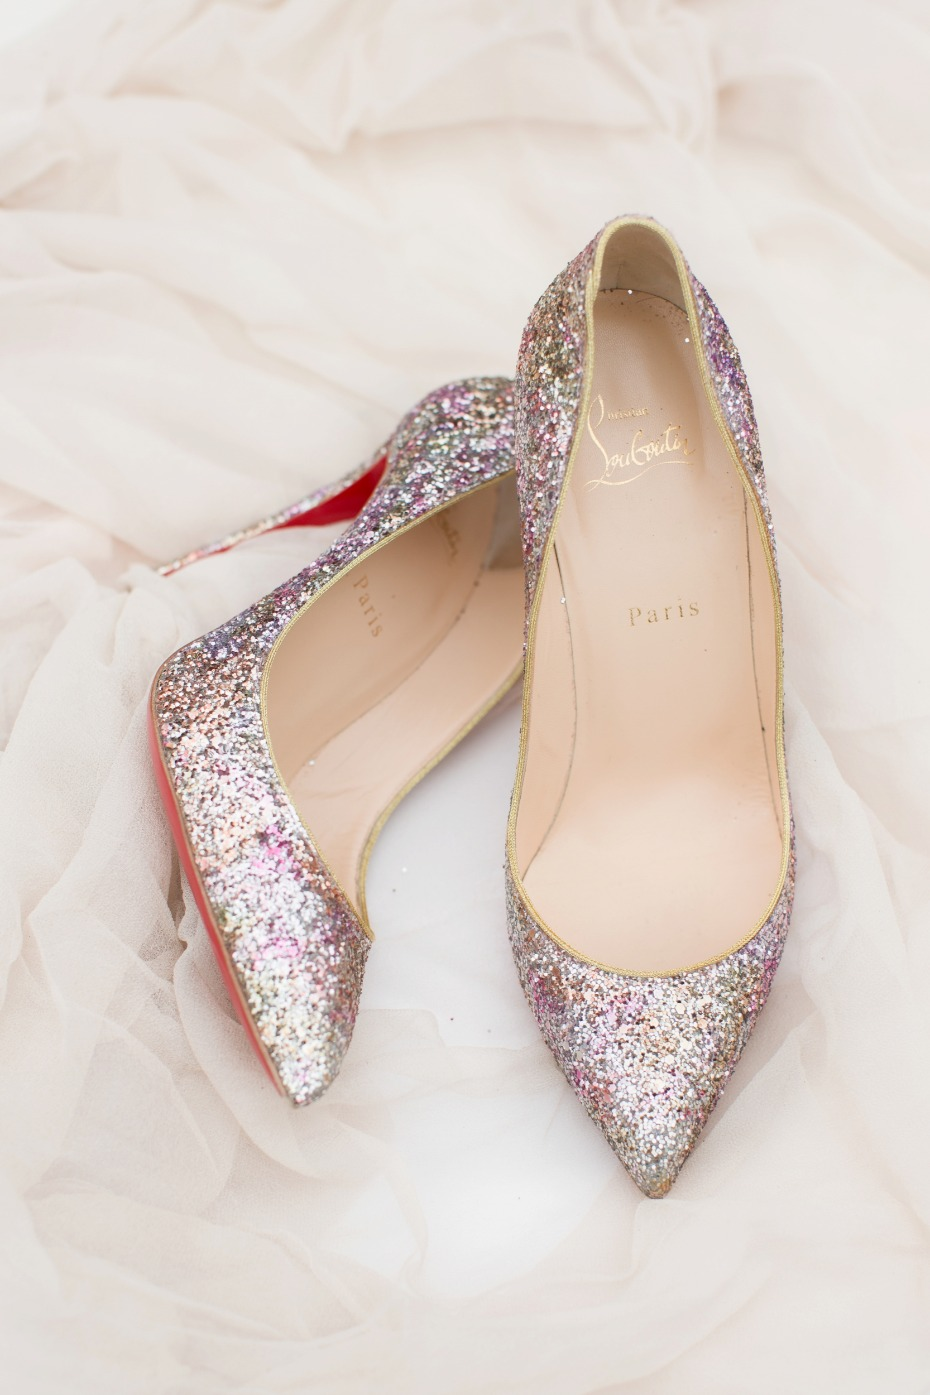 Sparkly Louboutin pumps for the bride